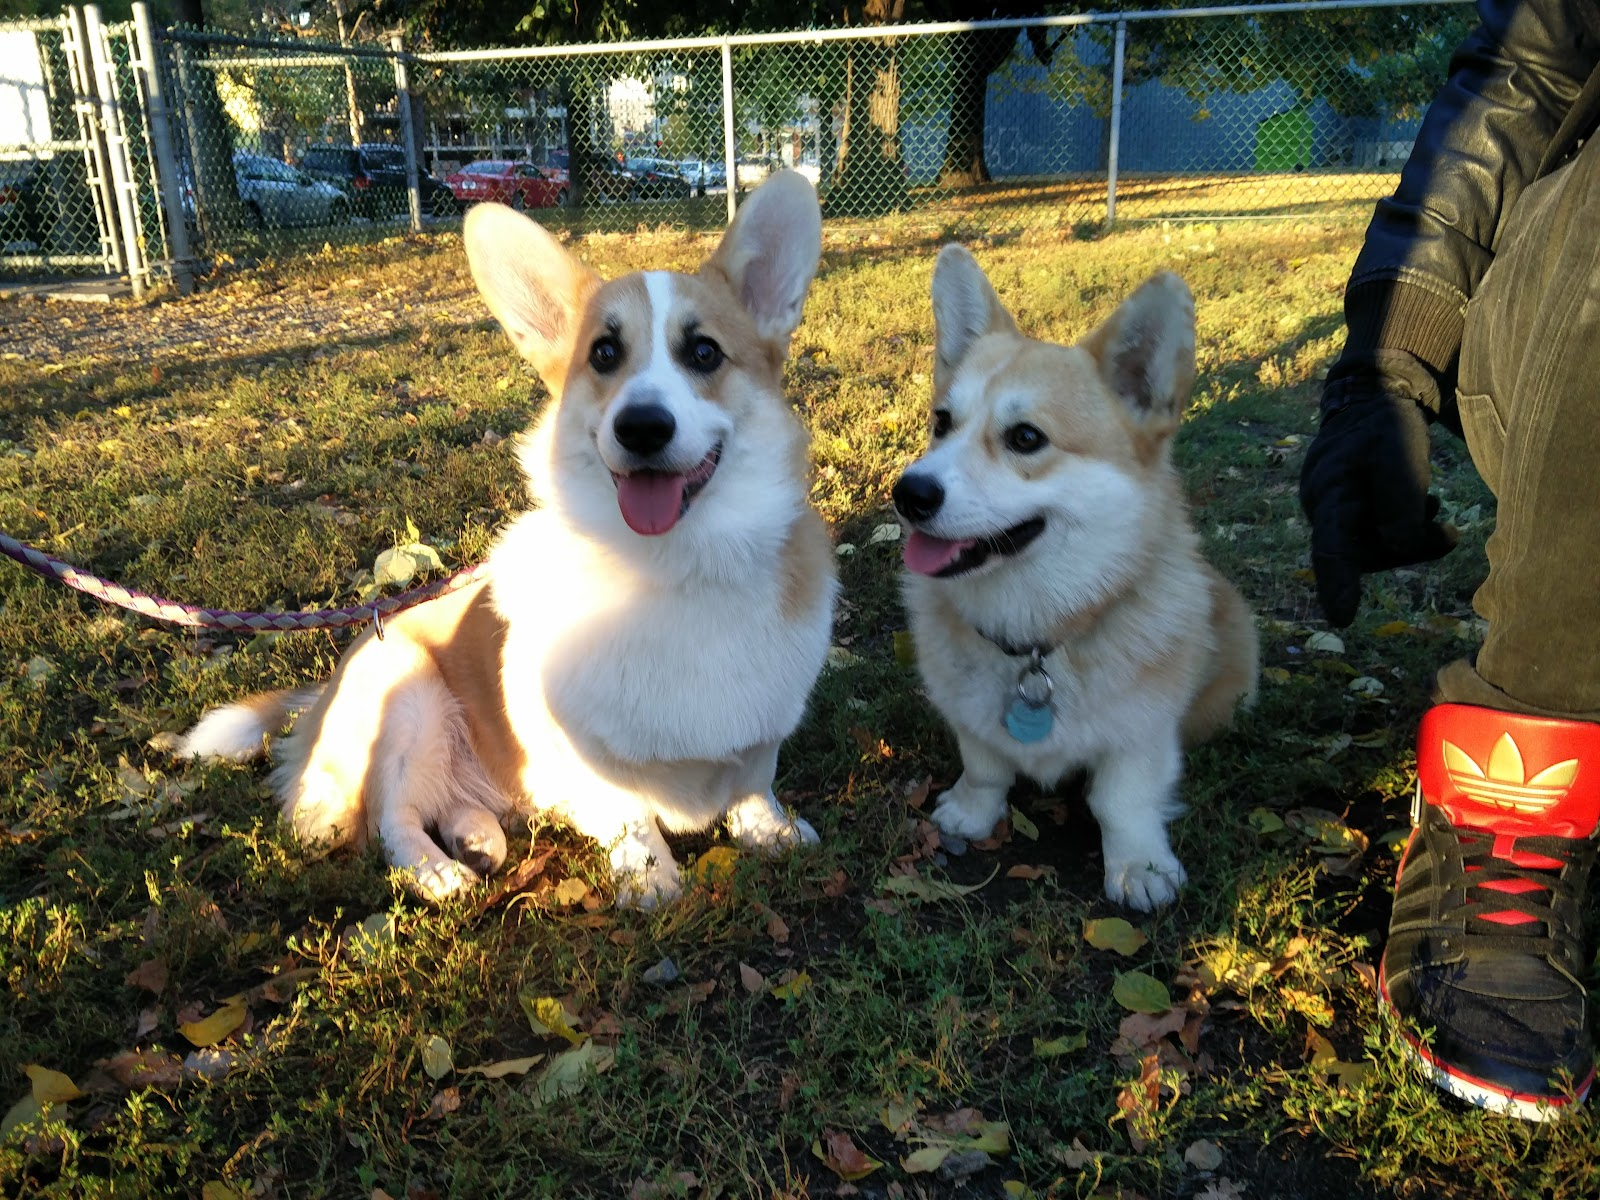 Corgi couple at the Griffintown dog park in Montreal